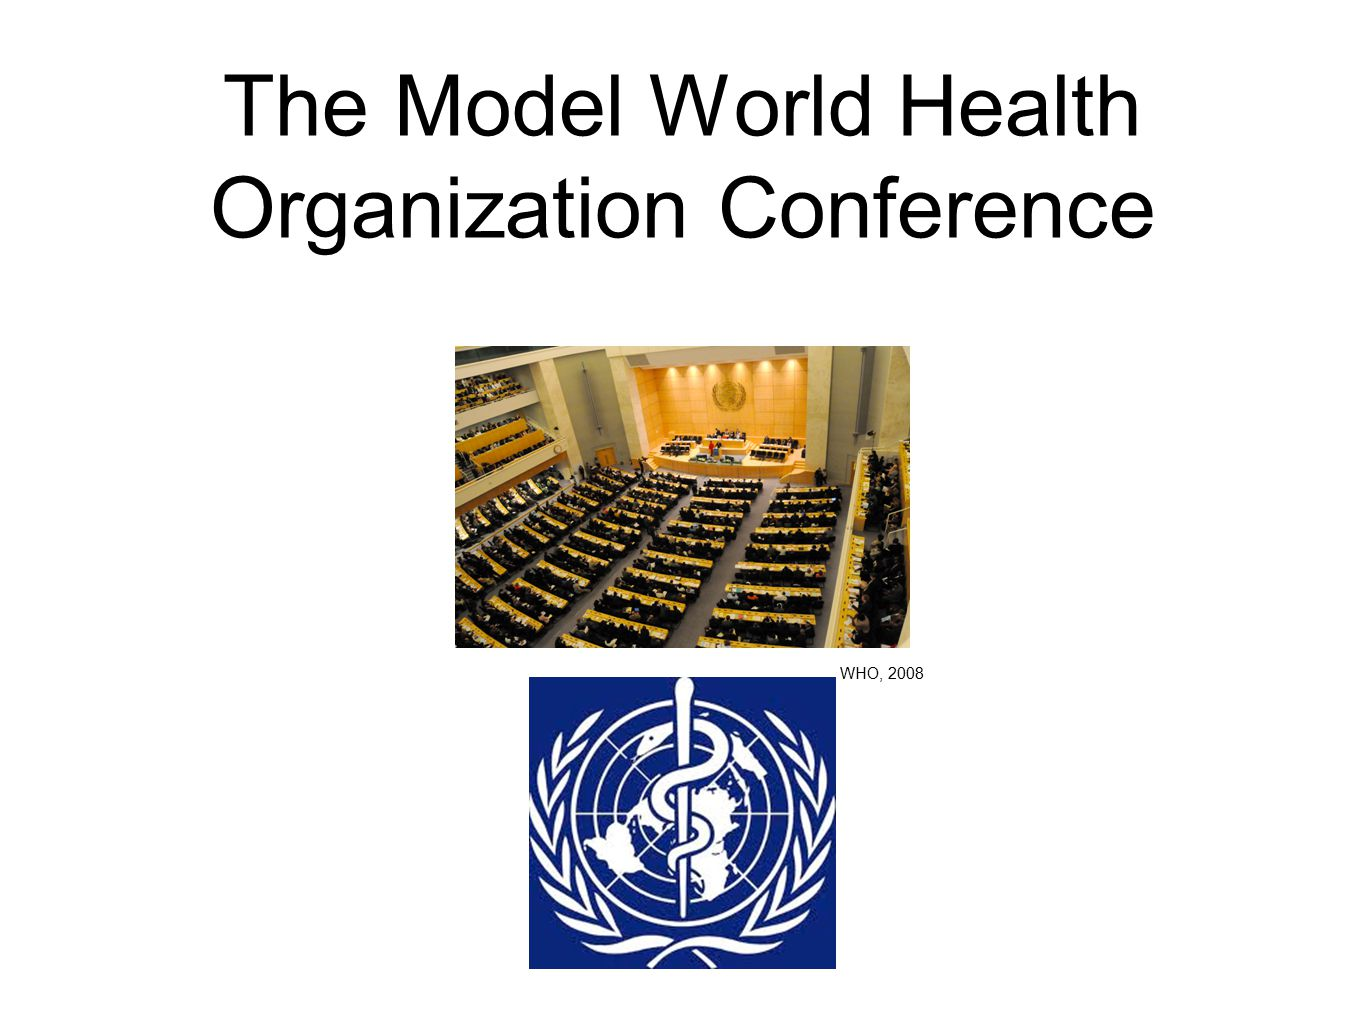 The Model World Health Organization Conference WHO, 2008